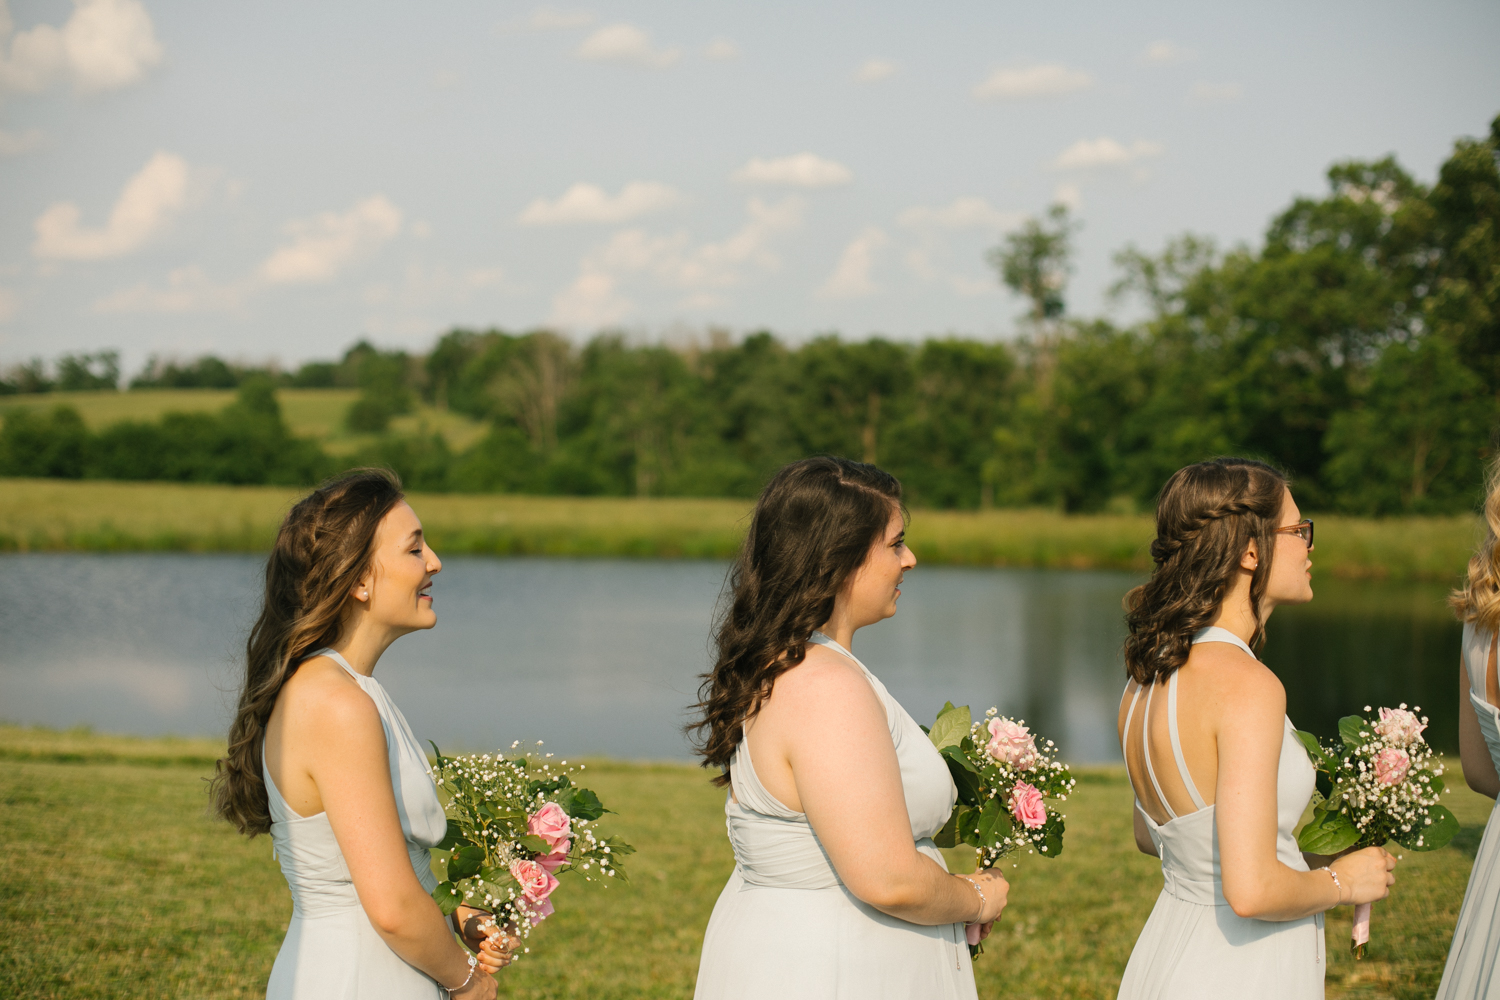 2019.06.01_CraskWedding_Starks-97.jpg